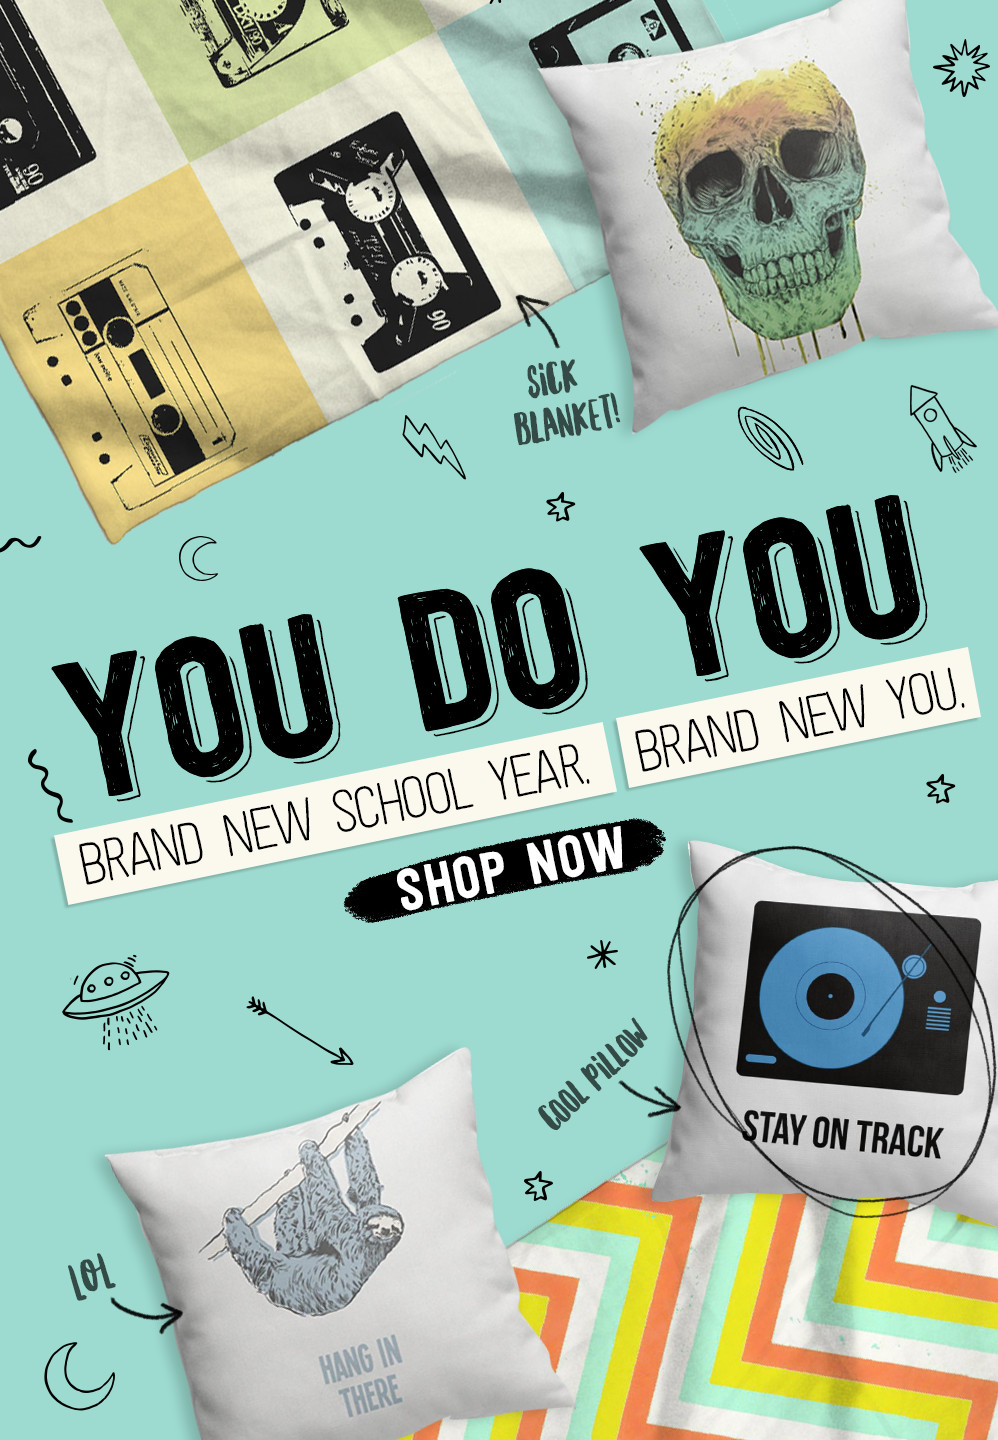 YOU DO YOU. Brand New School Year. Brand New You. Shop Now.